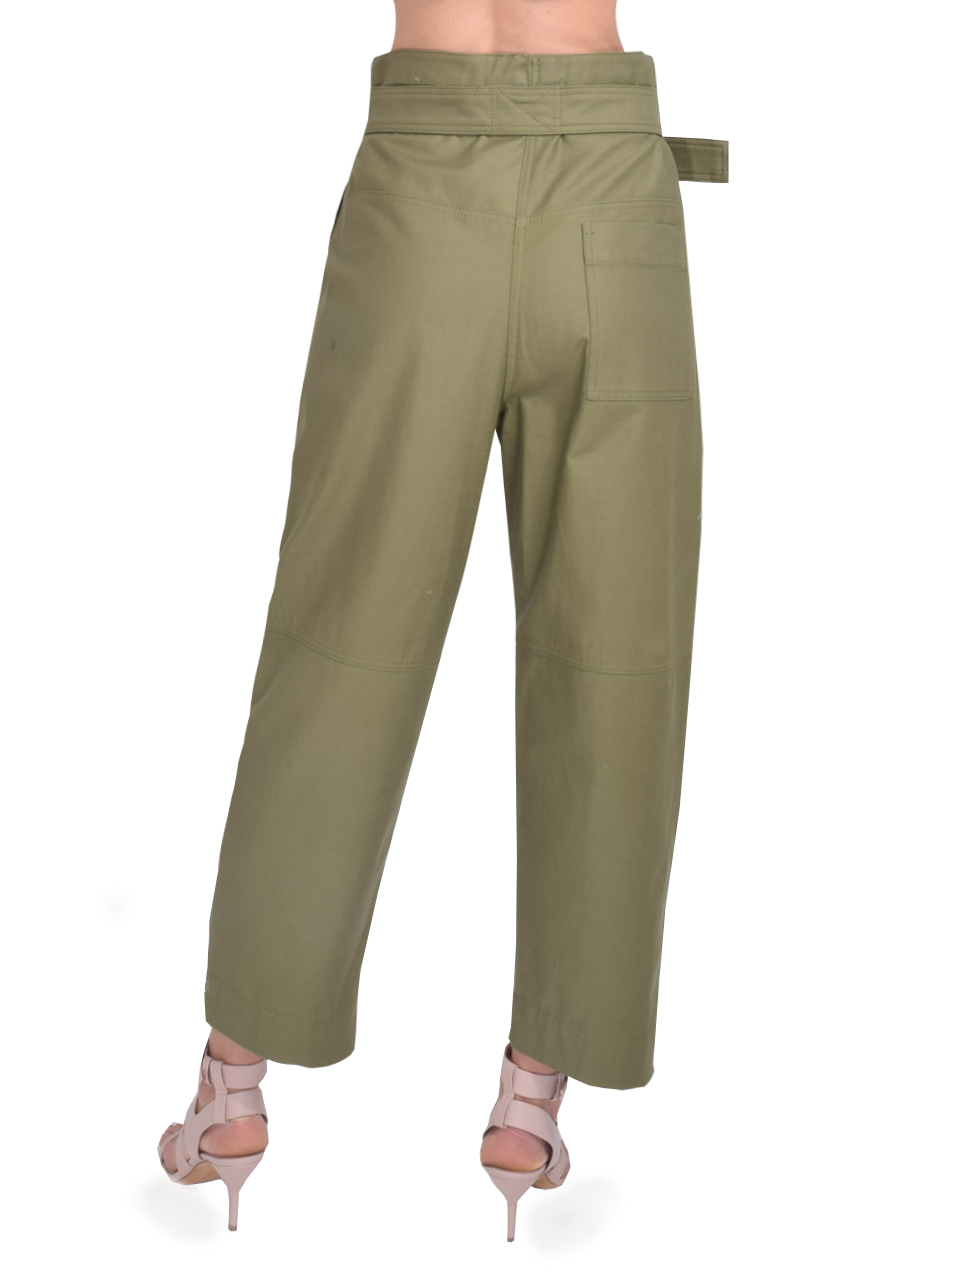 3.1 Phillip Lim Belted Cargo Pant in Olive